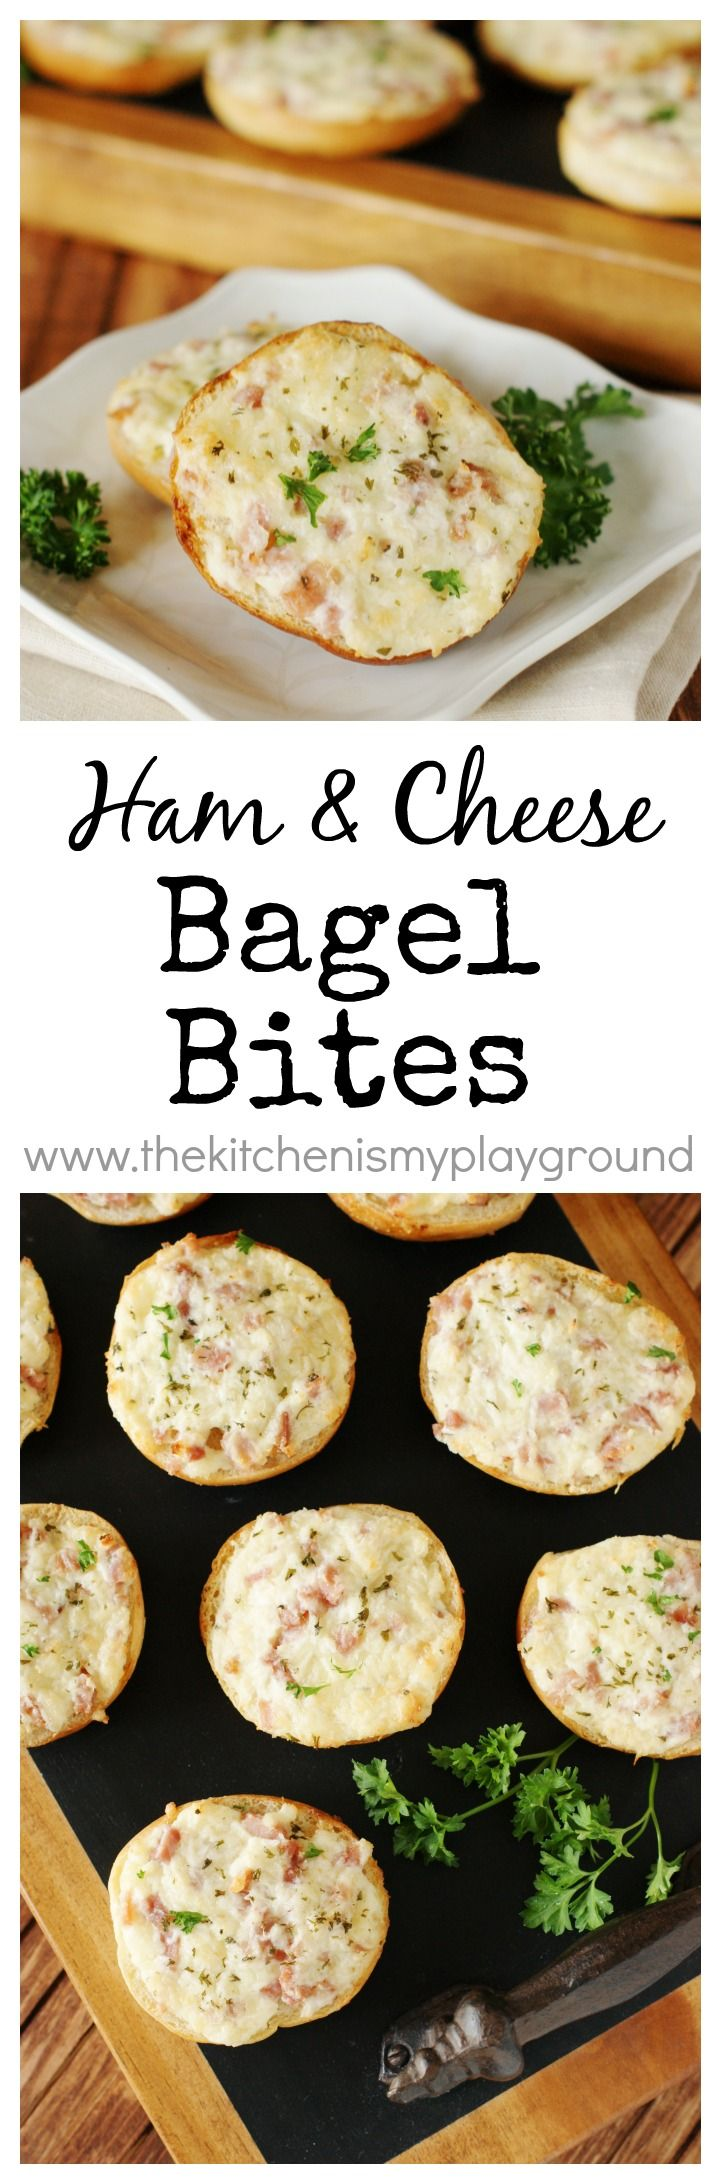 Ham and Cheese Bagel Bites ~ topped with a creamy ham and cheese mixture, these baked bites are perfect for snacking, partying, lunching, and brunching!   www.thekitchenismyplayground.com